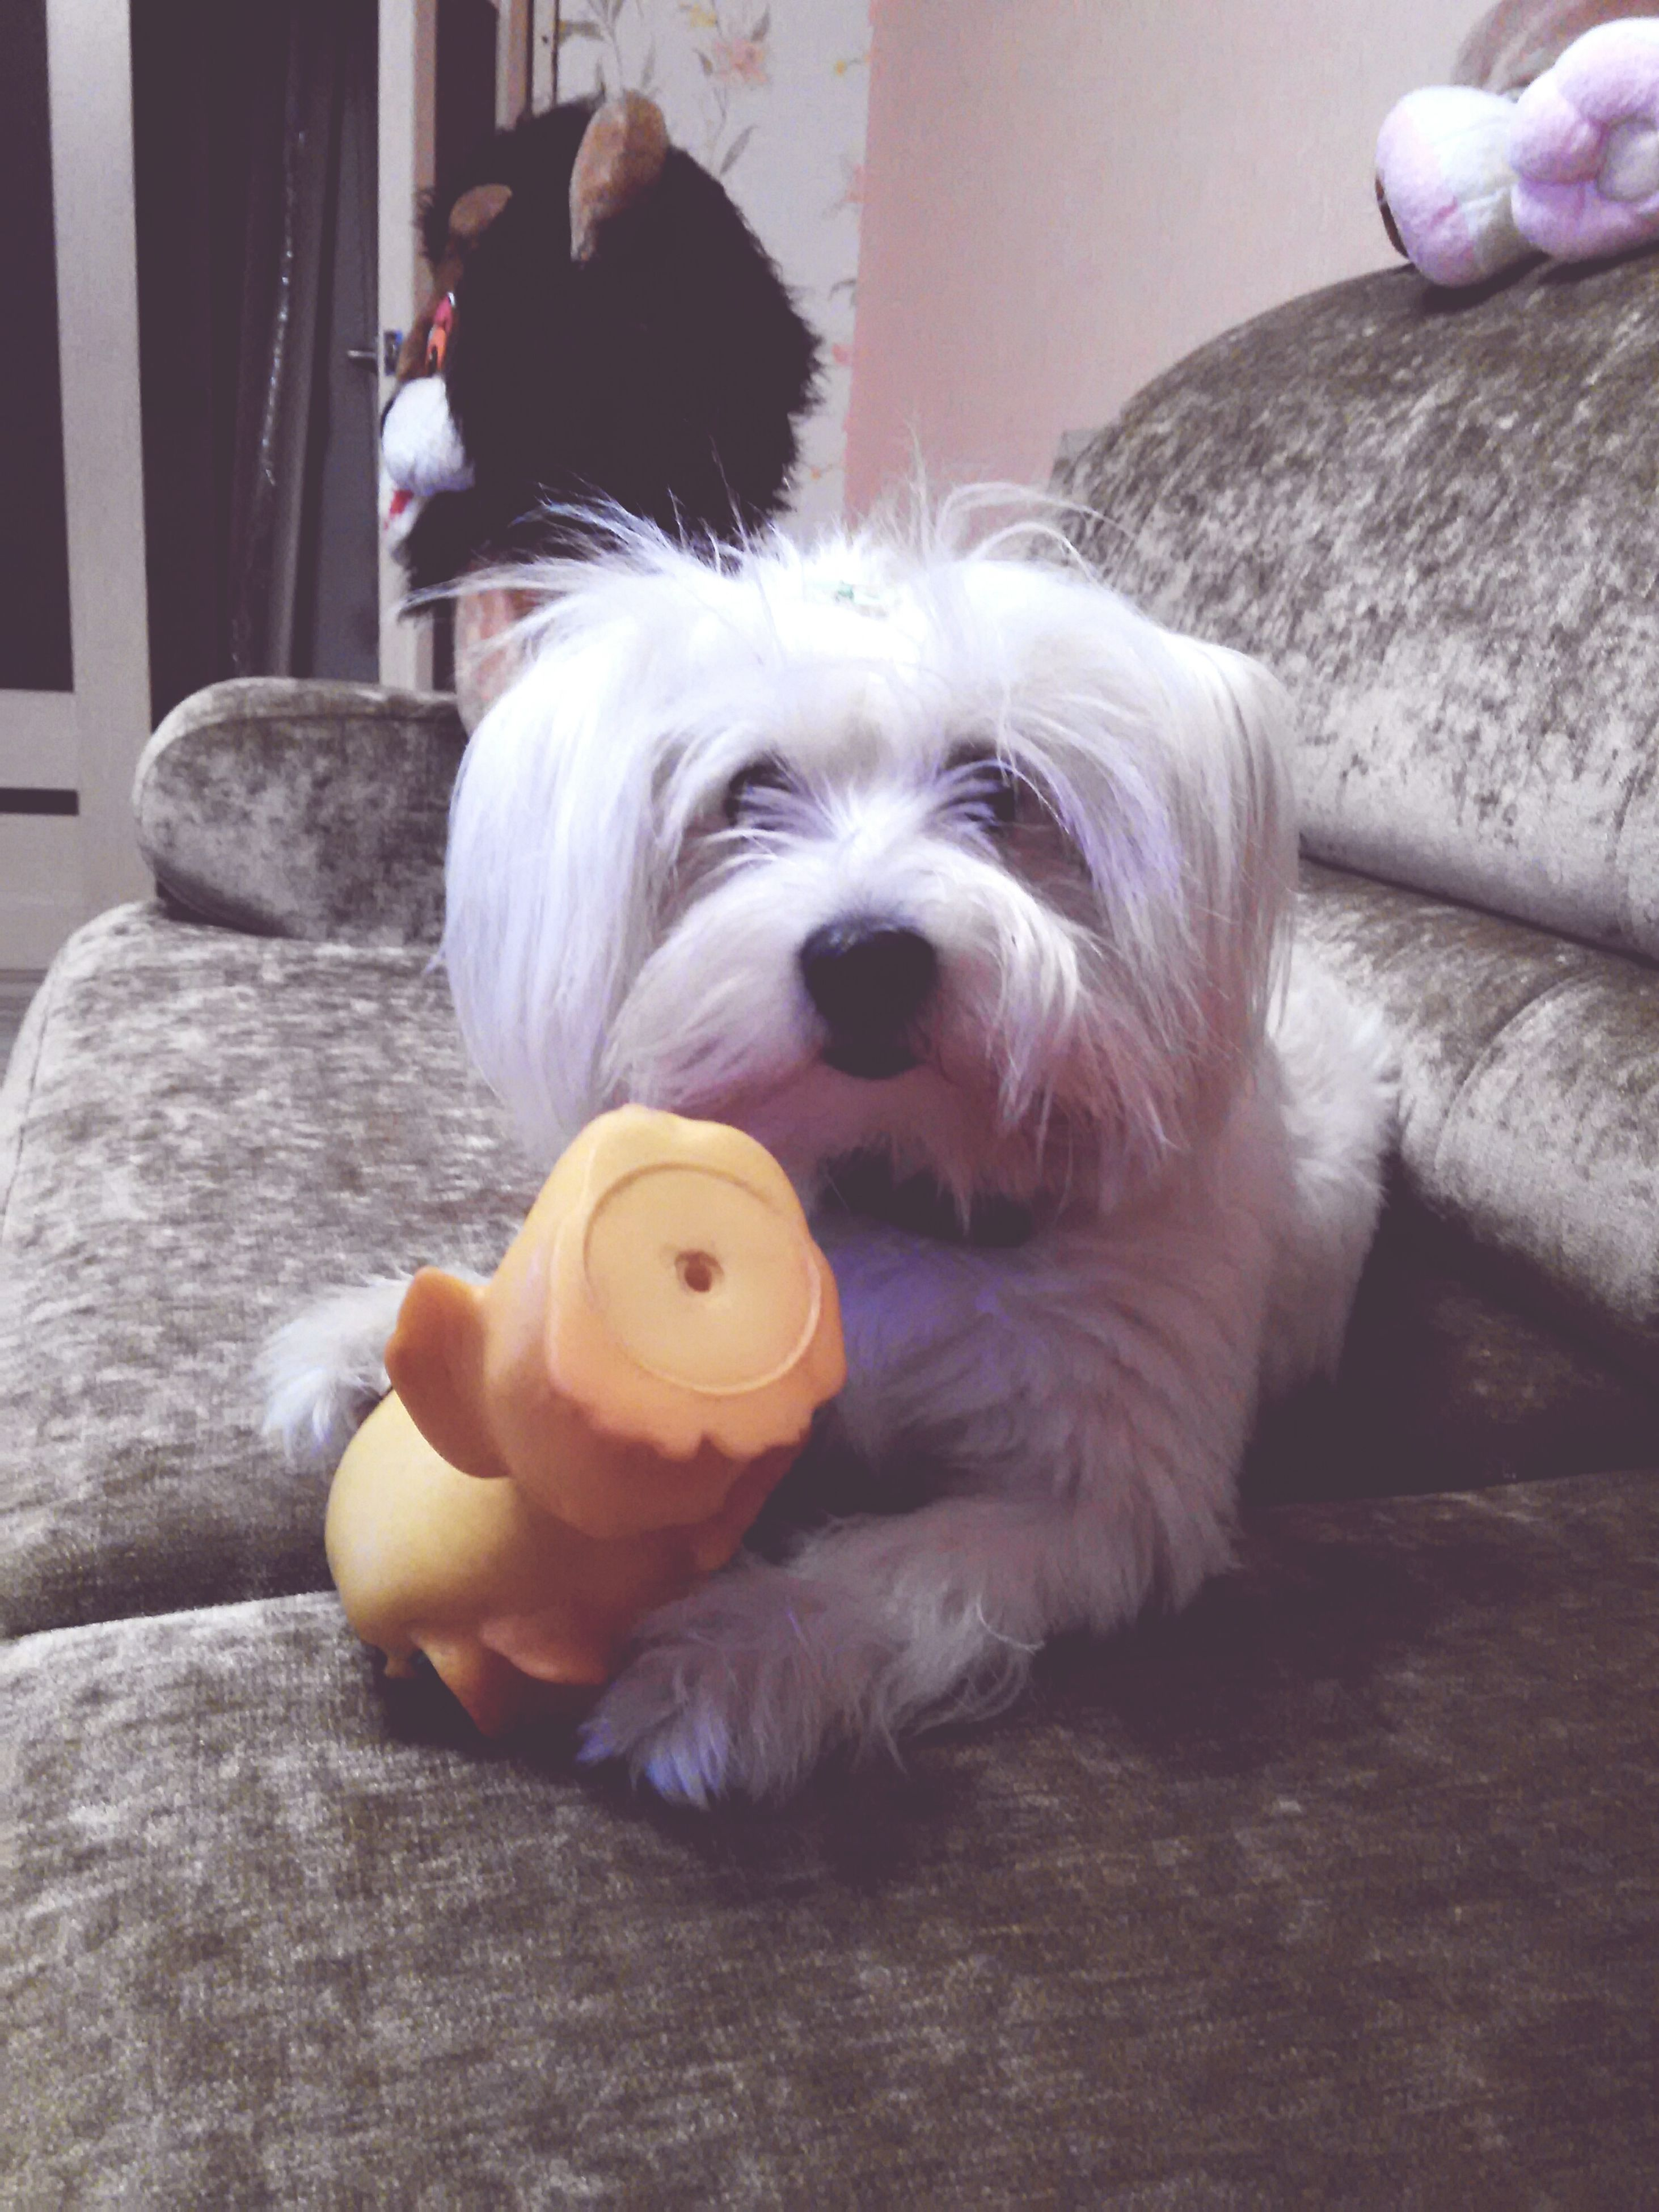 indoors, domestic animals, pets, dog, one animal, mammal, animal themes, toy, home interior, relaxation, cute, stuffed toy, portrait, looking at camera, sitting, close-up, childhood, no people, home, animal representation